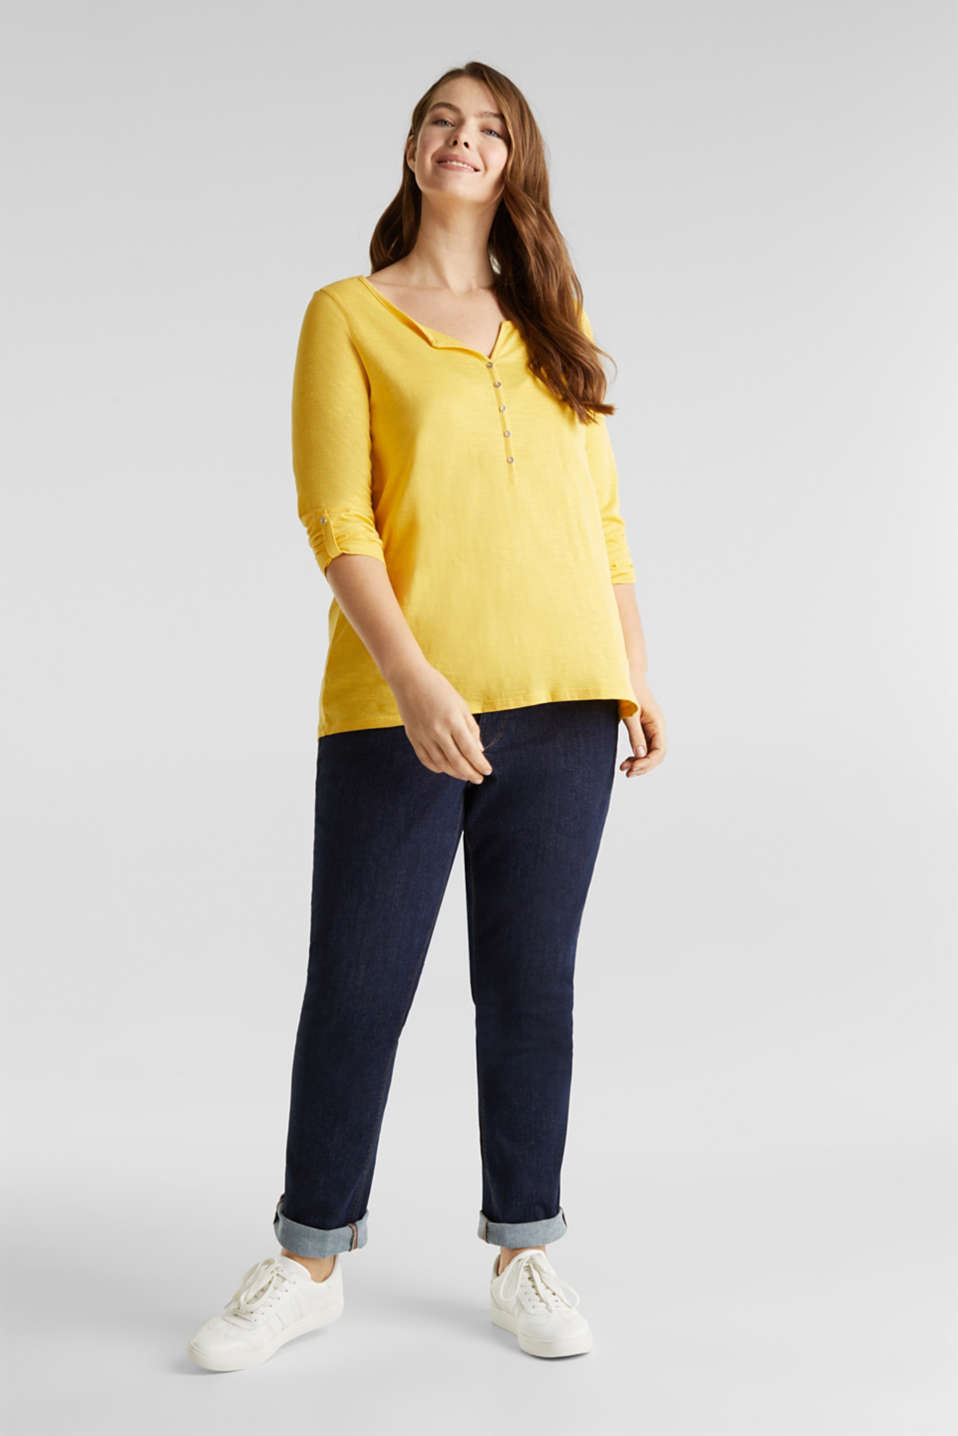 CURVY long sleeve top, organic cotton, YELLOW 3, detail image number 1